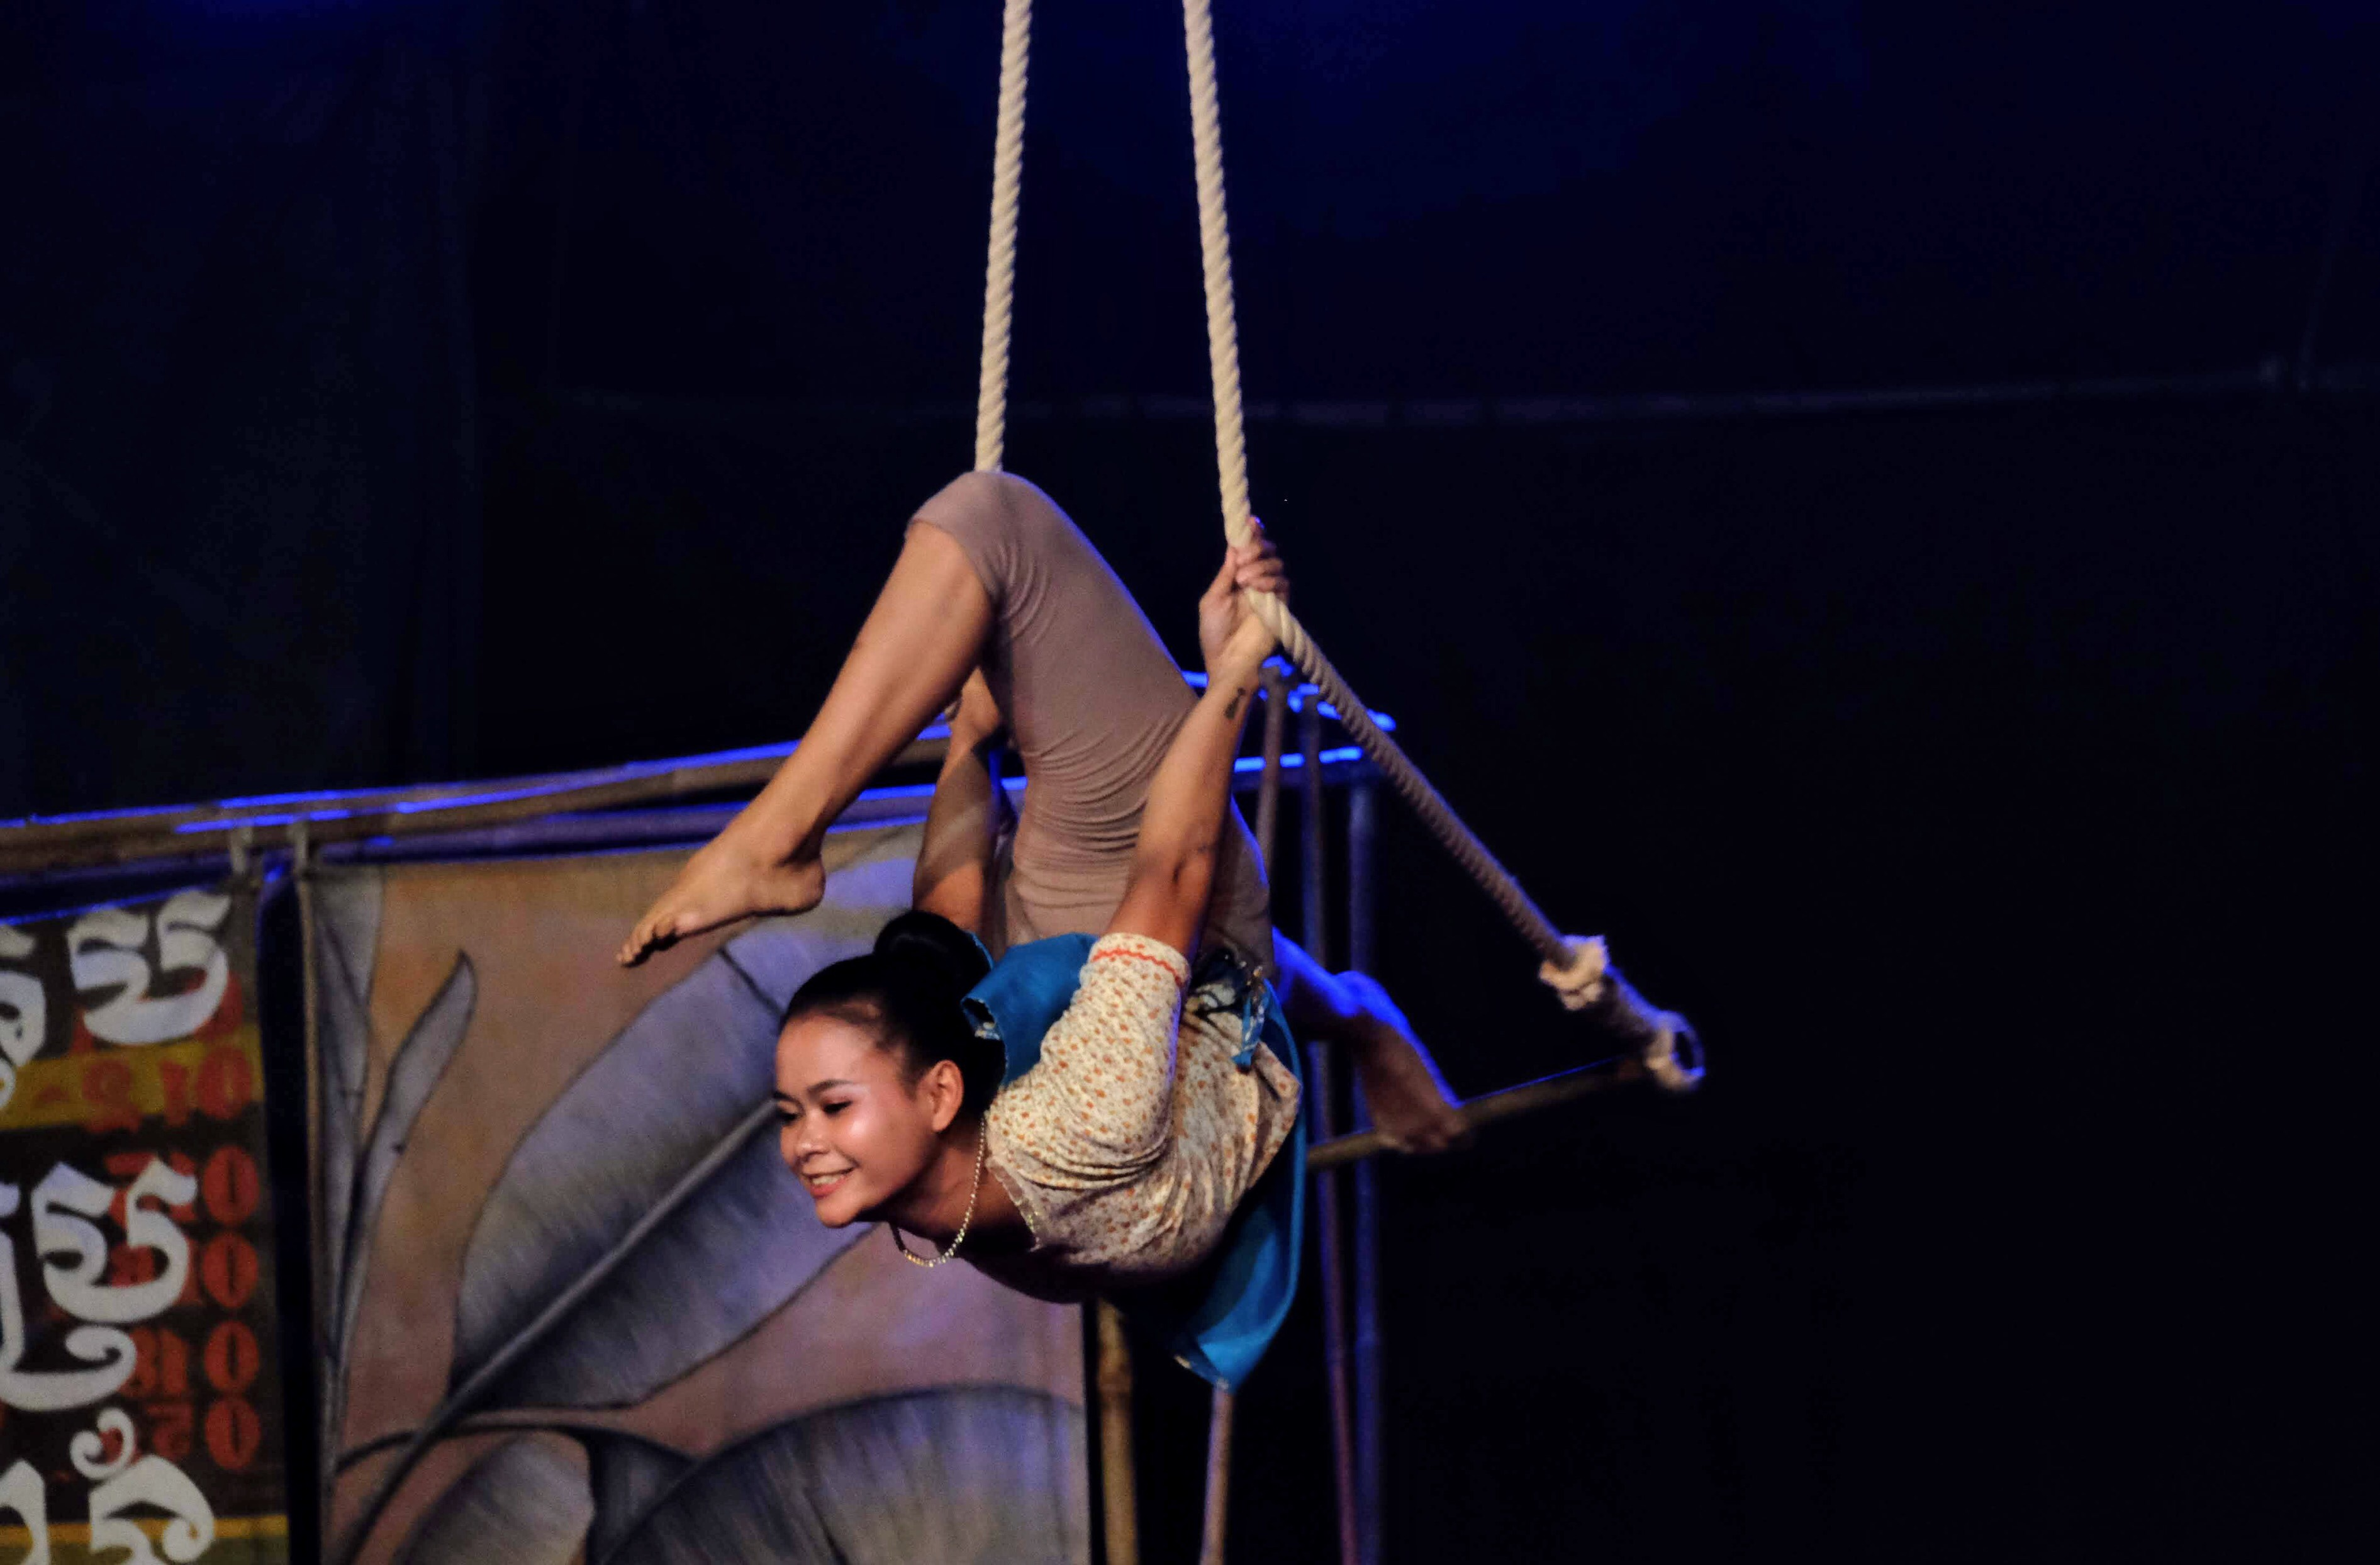 Your guide to watching the Phare Circus in Battambang, Cambodia